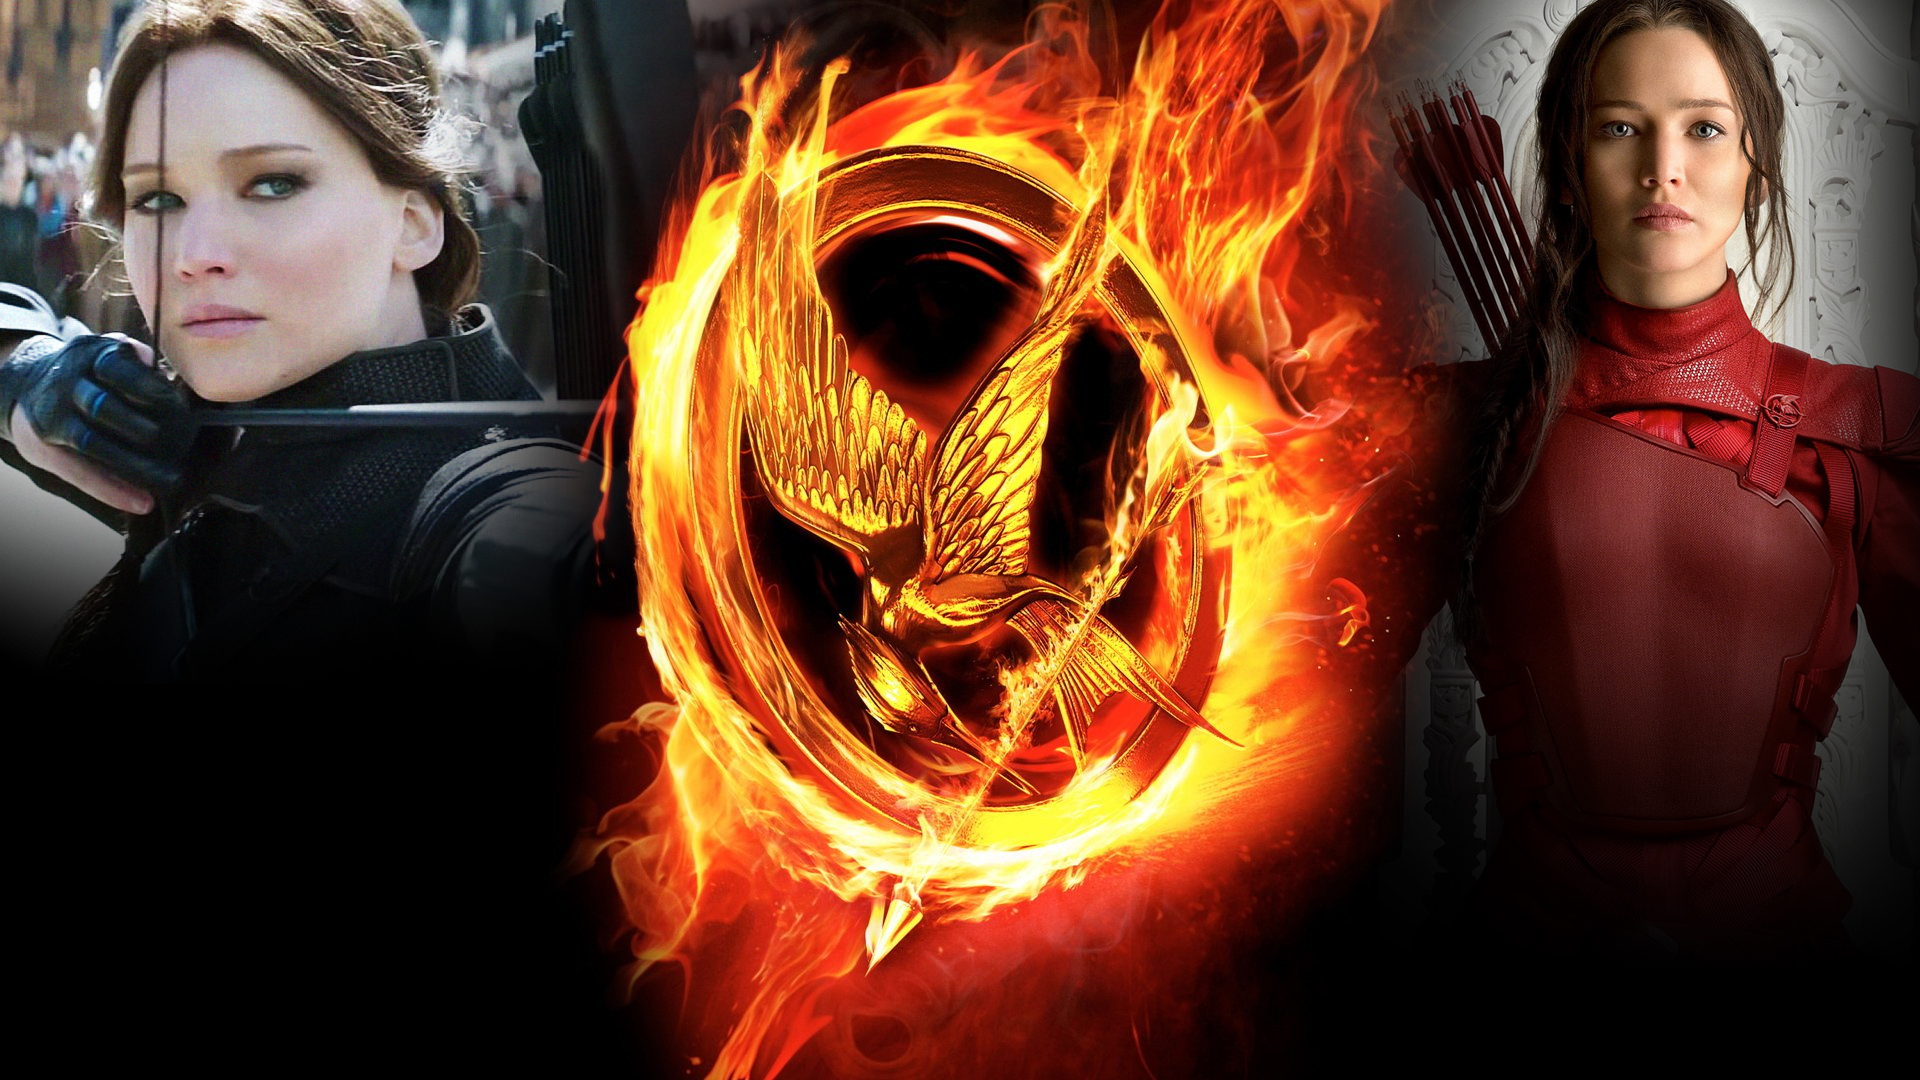 The Hunger Games: Mockingjay - Part 2 Wallpapers, Pictures ...